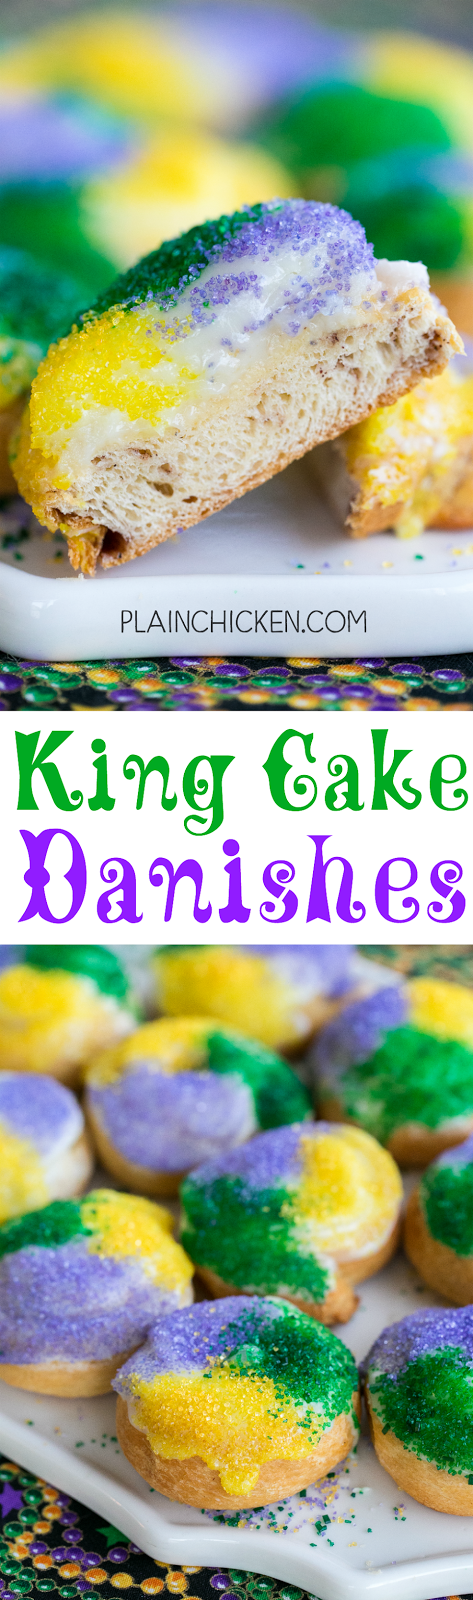 King Cake Danishes - only 5 ingredients! These things are SOOOO good!!! Perfect for Mardi Gras! Crescent rolls, cinnamon, cream cheese, powdered sugar and milk. Can make ahead of time and reheat for Fat Tuesday breakfast!